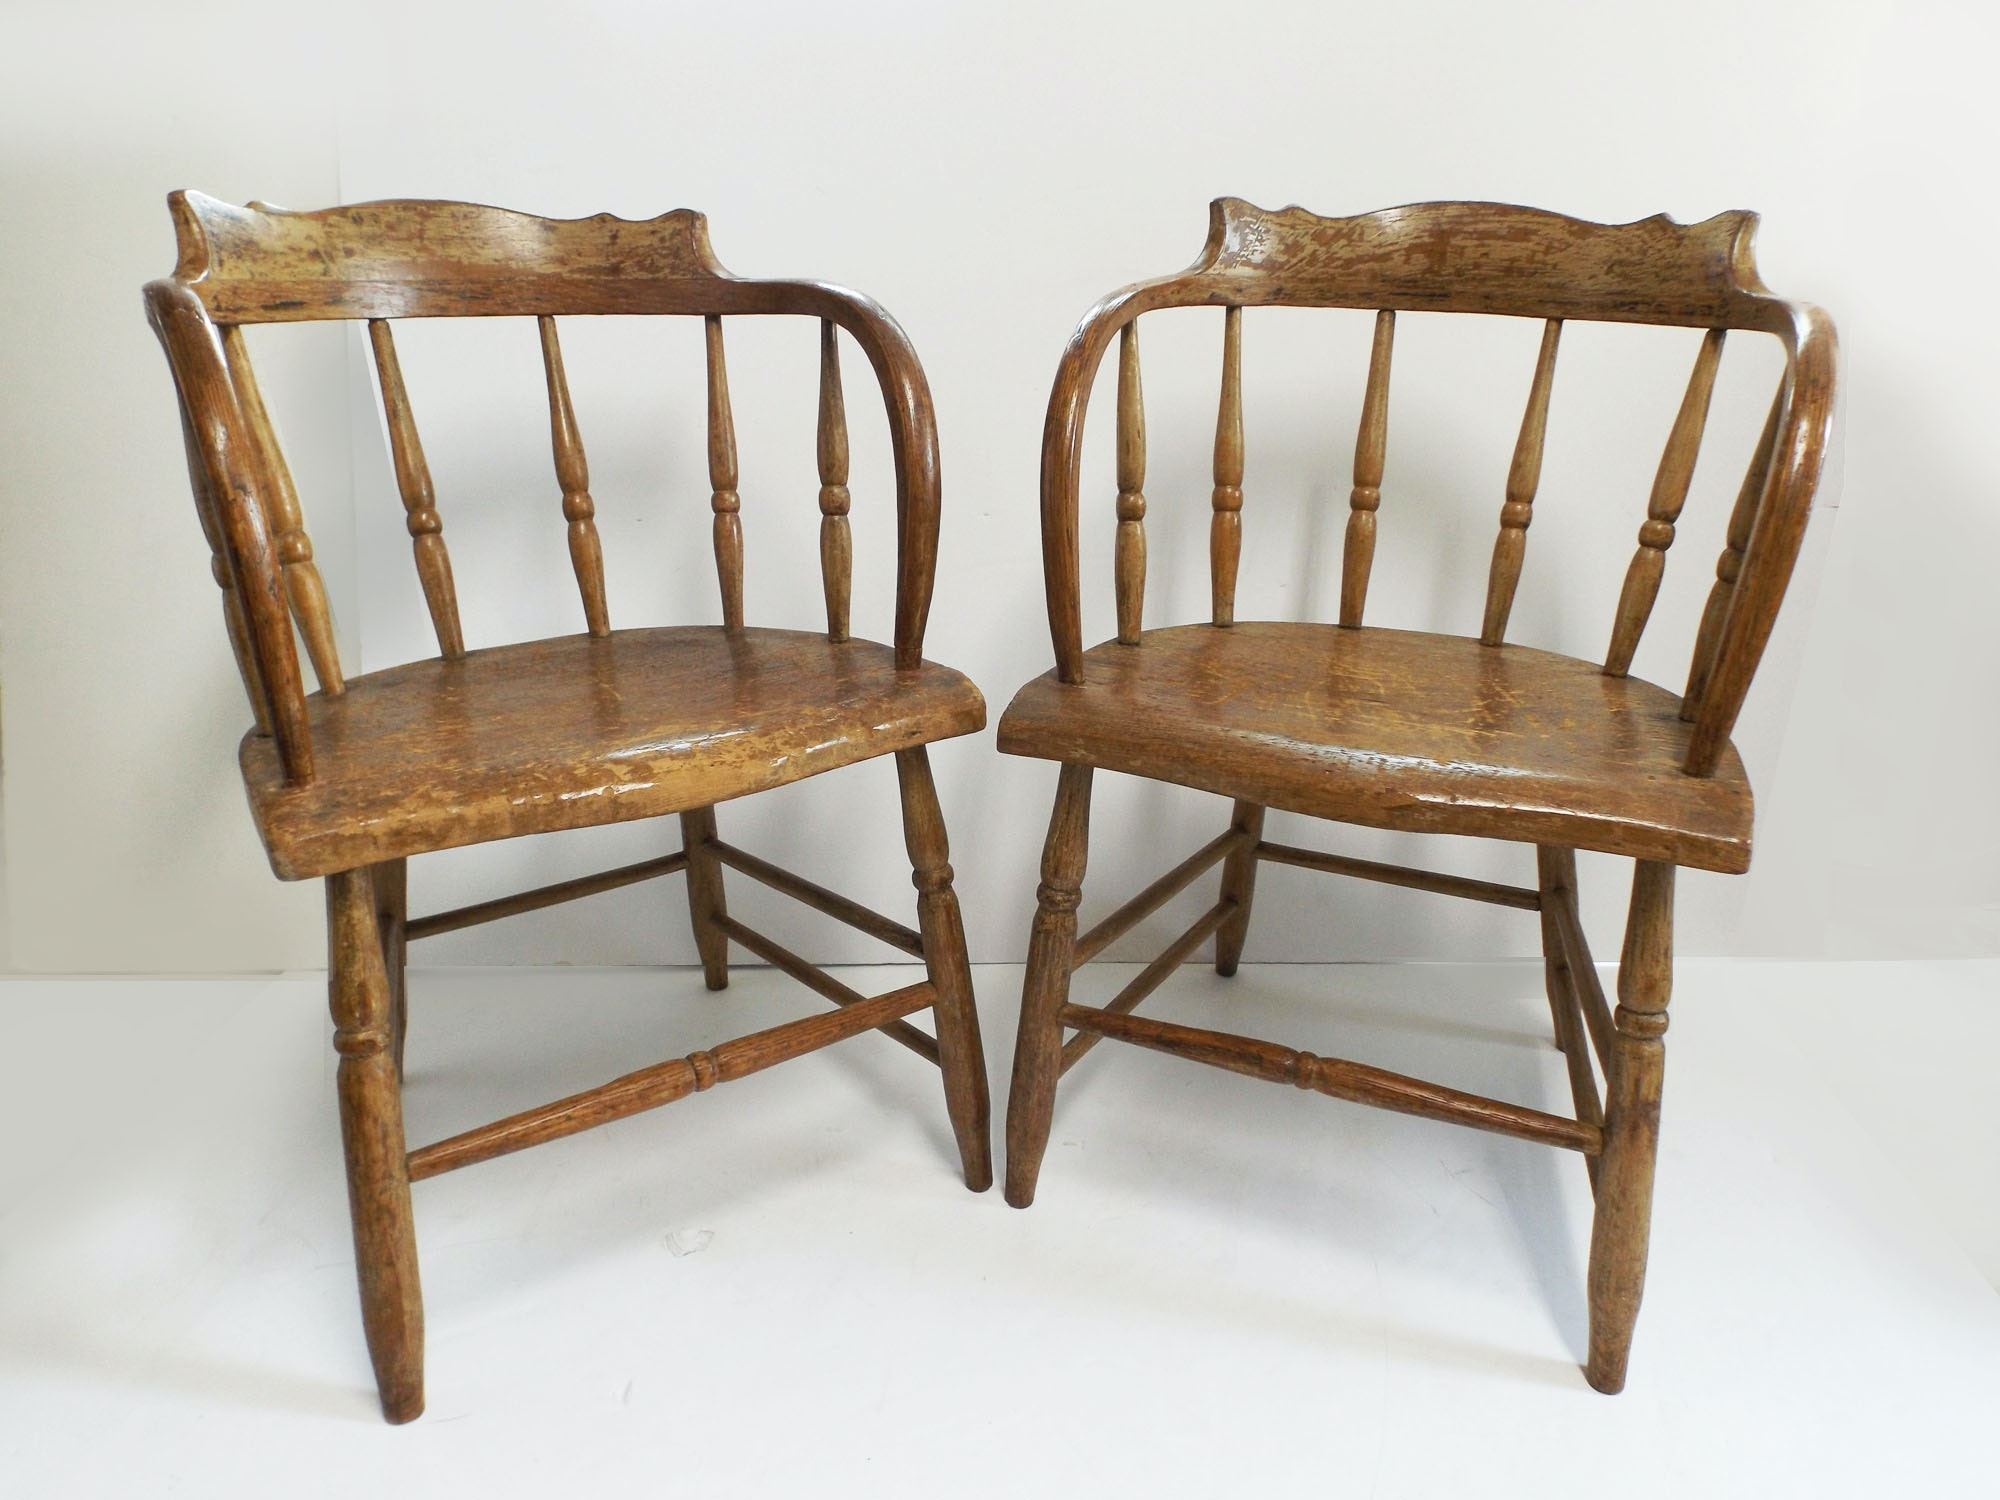 A Fabulous Pair Of Early Captainu0027s Chairs From Indian Hill Estate